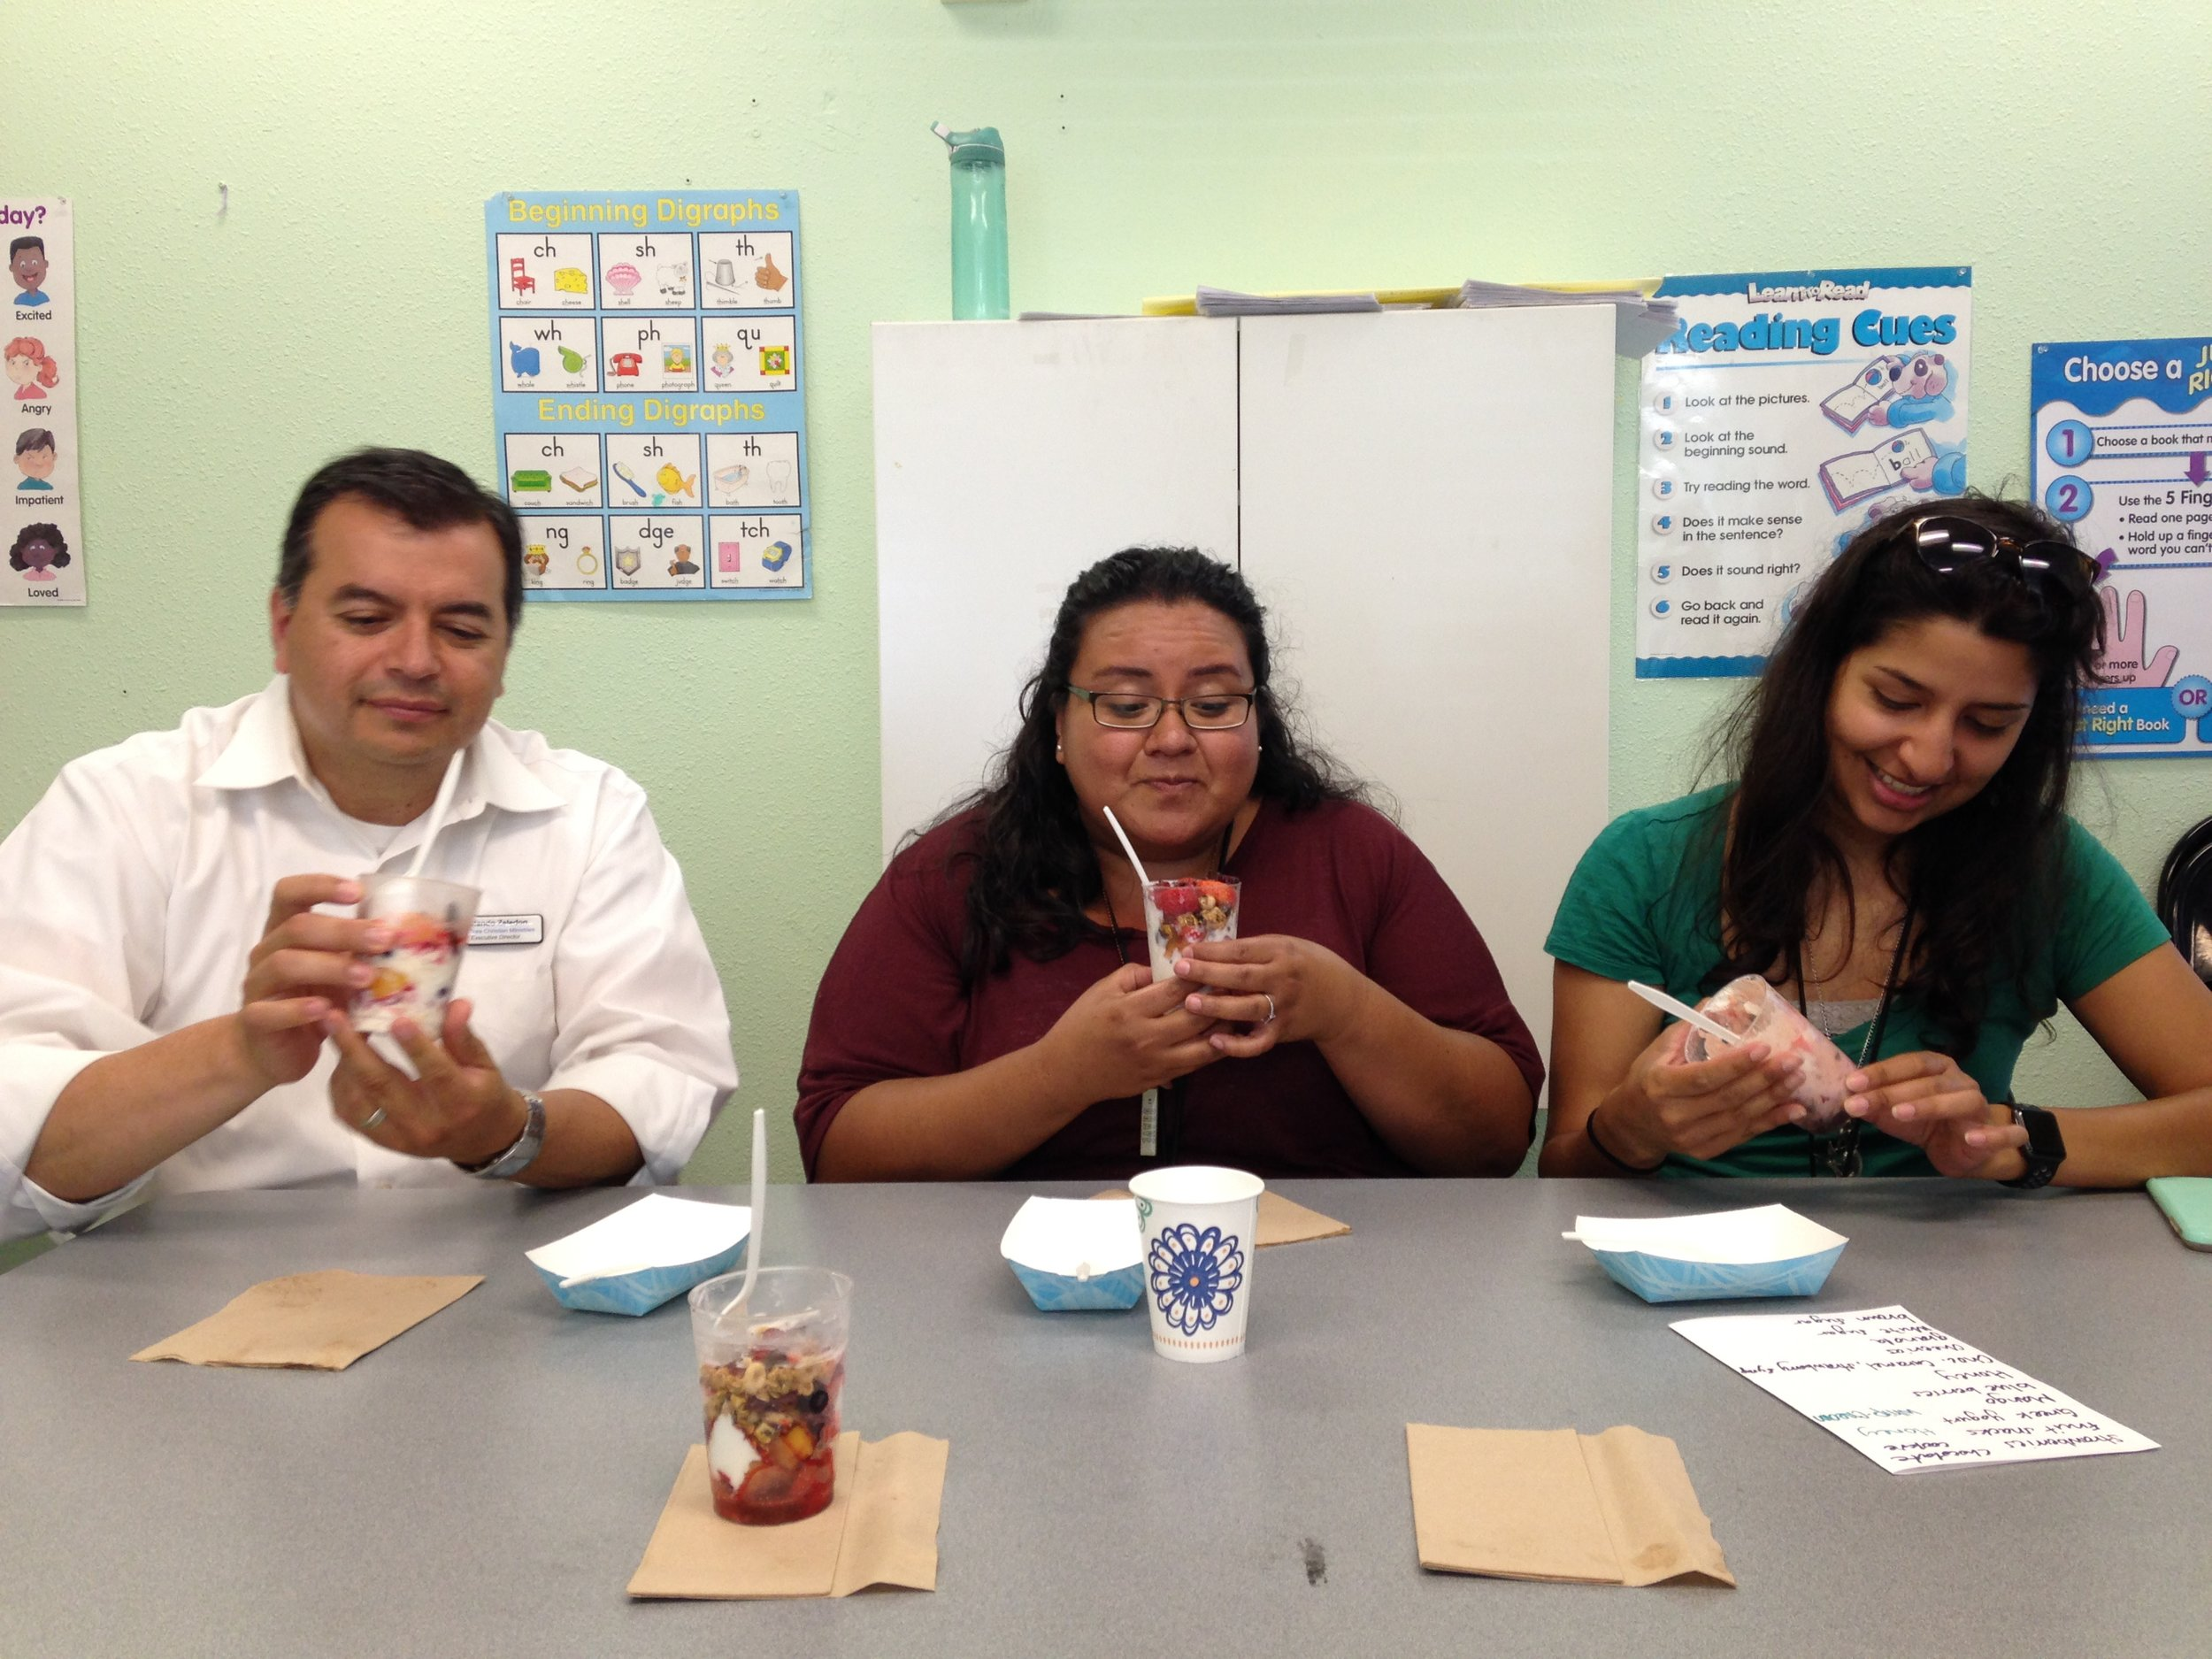 Taste Test! - In this photo taken in 2016, Cassie, Rolando, and Alyssa, one of our former staff, try yogurt parfaits made by our CREATE students during their Science of Cooking class.